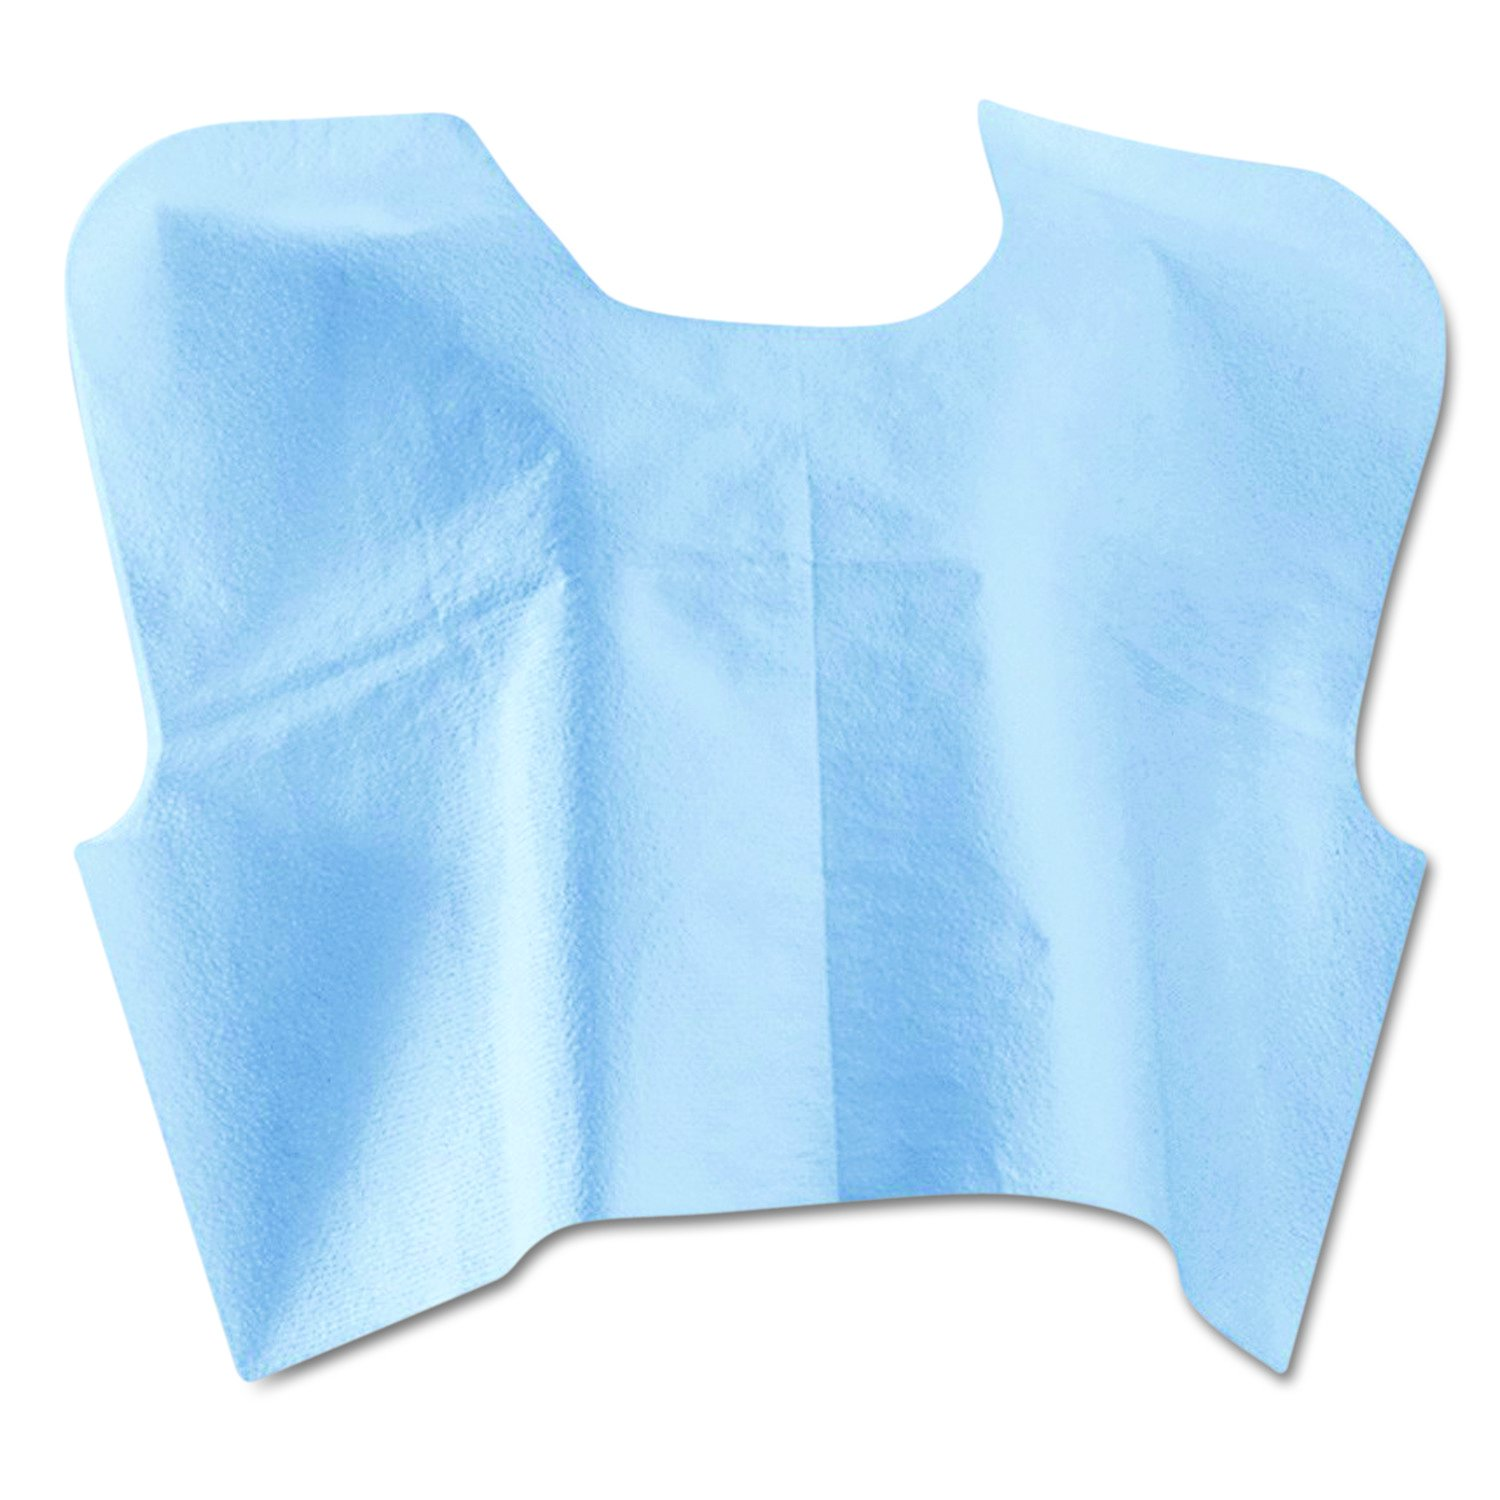 Medline NON25249 Disposable Patient Exam Capes, 3-Ply, Tissue/Poly/Tissue, 30w x 21l, Blue (Case of 100)